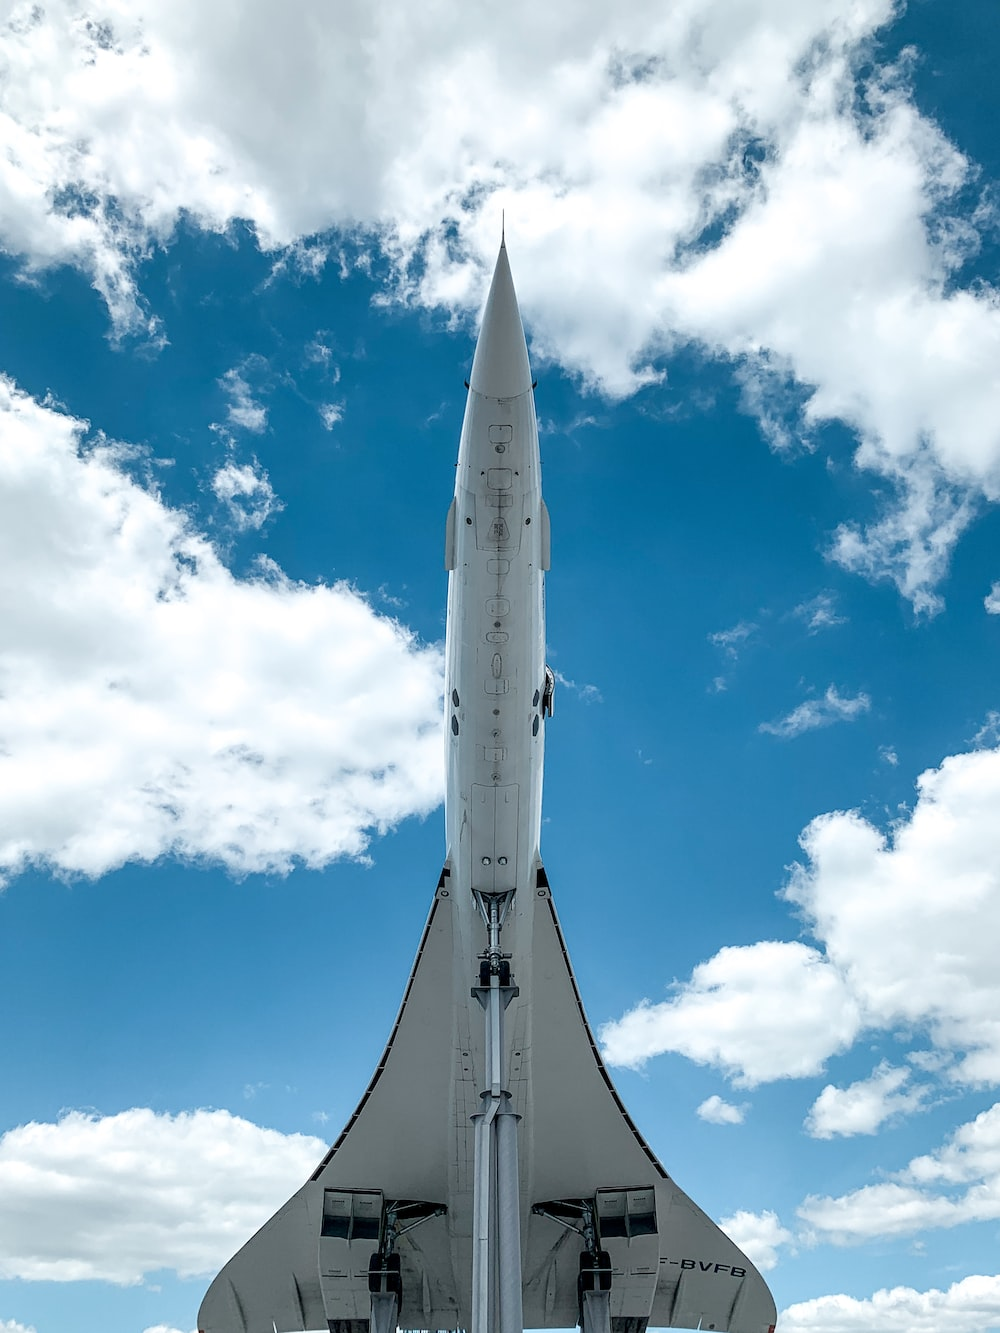 white and gray space ship under blue sky and white clouds during daytime